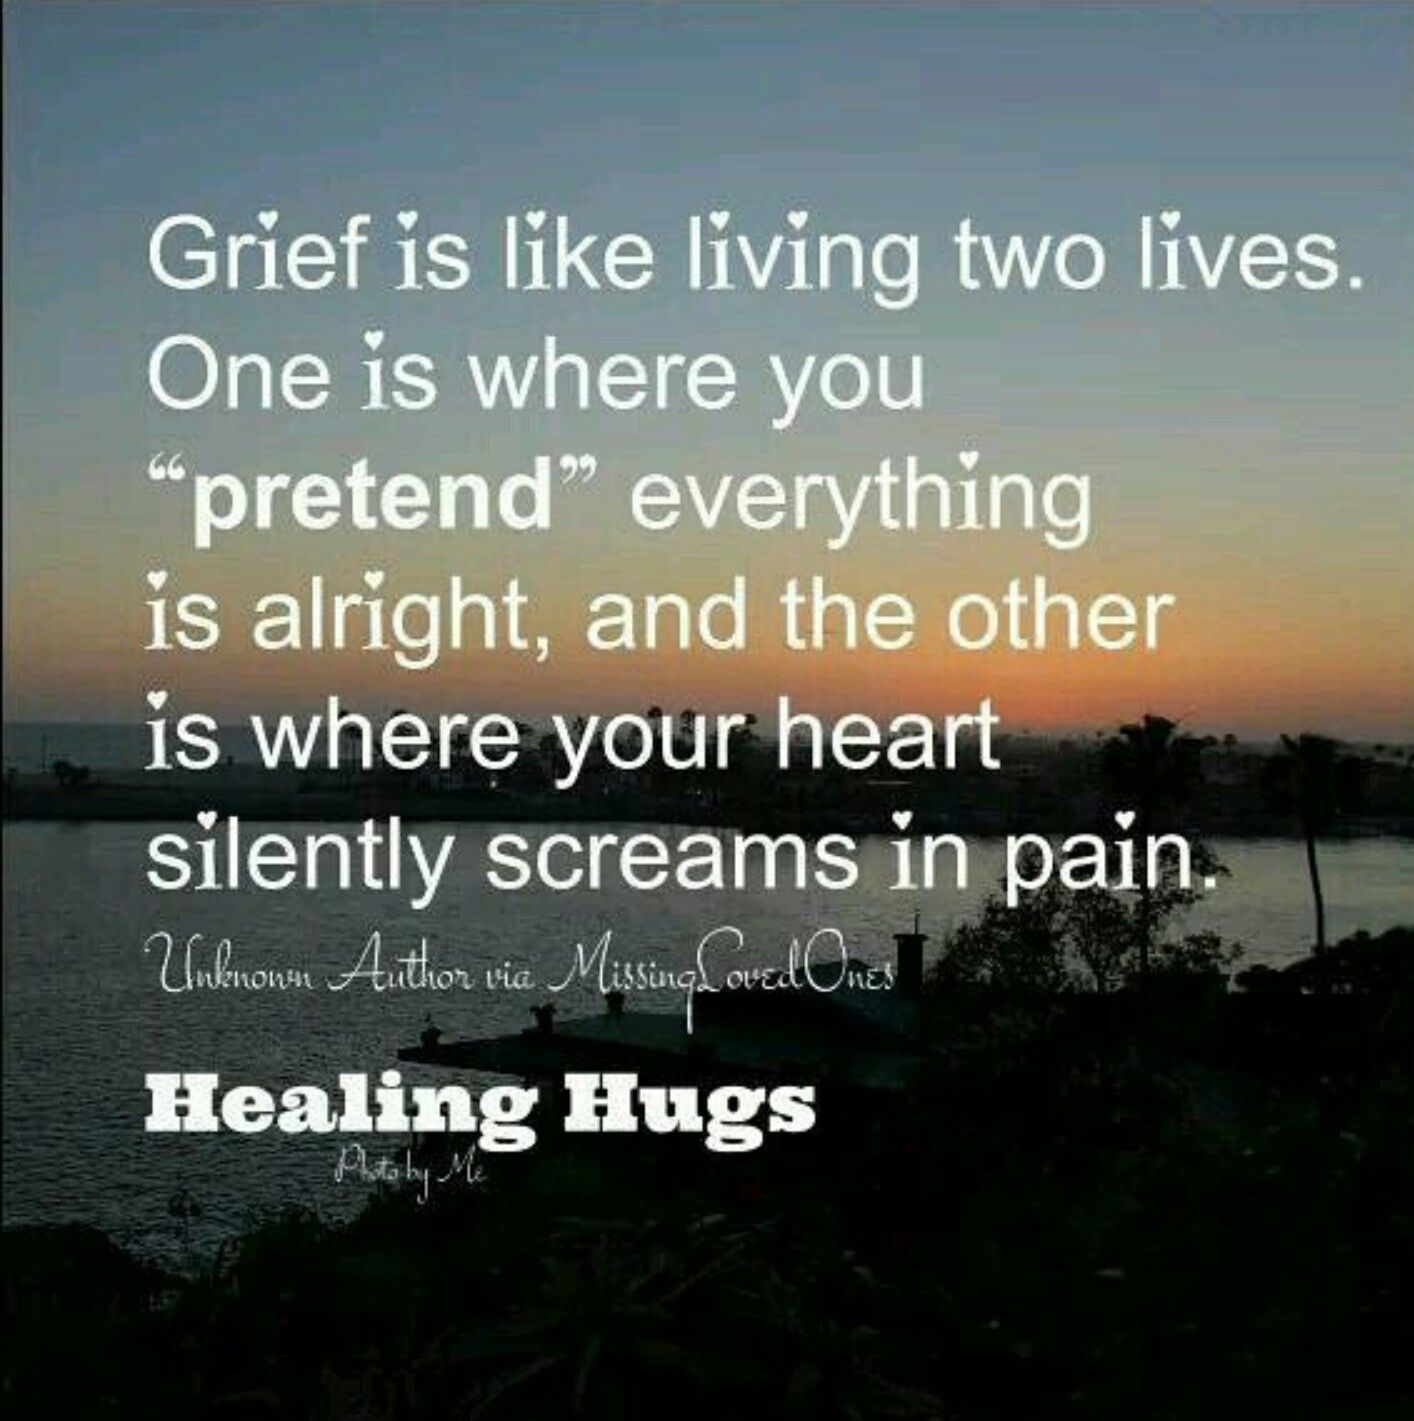 Grief Quotes Pinmaureen Davidson On Grief Quotes  Grief Quotes  Pinterest .